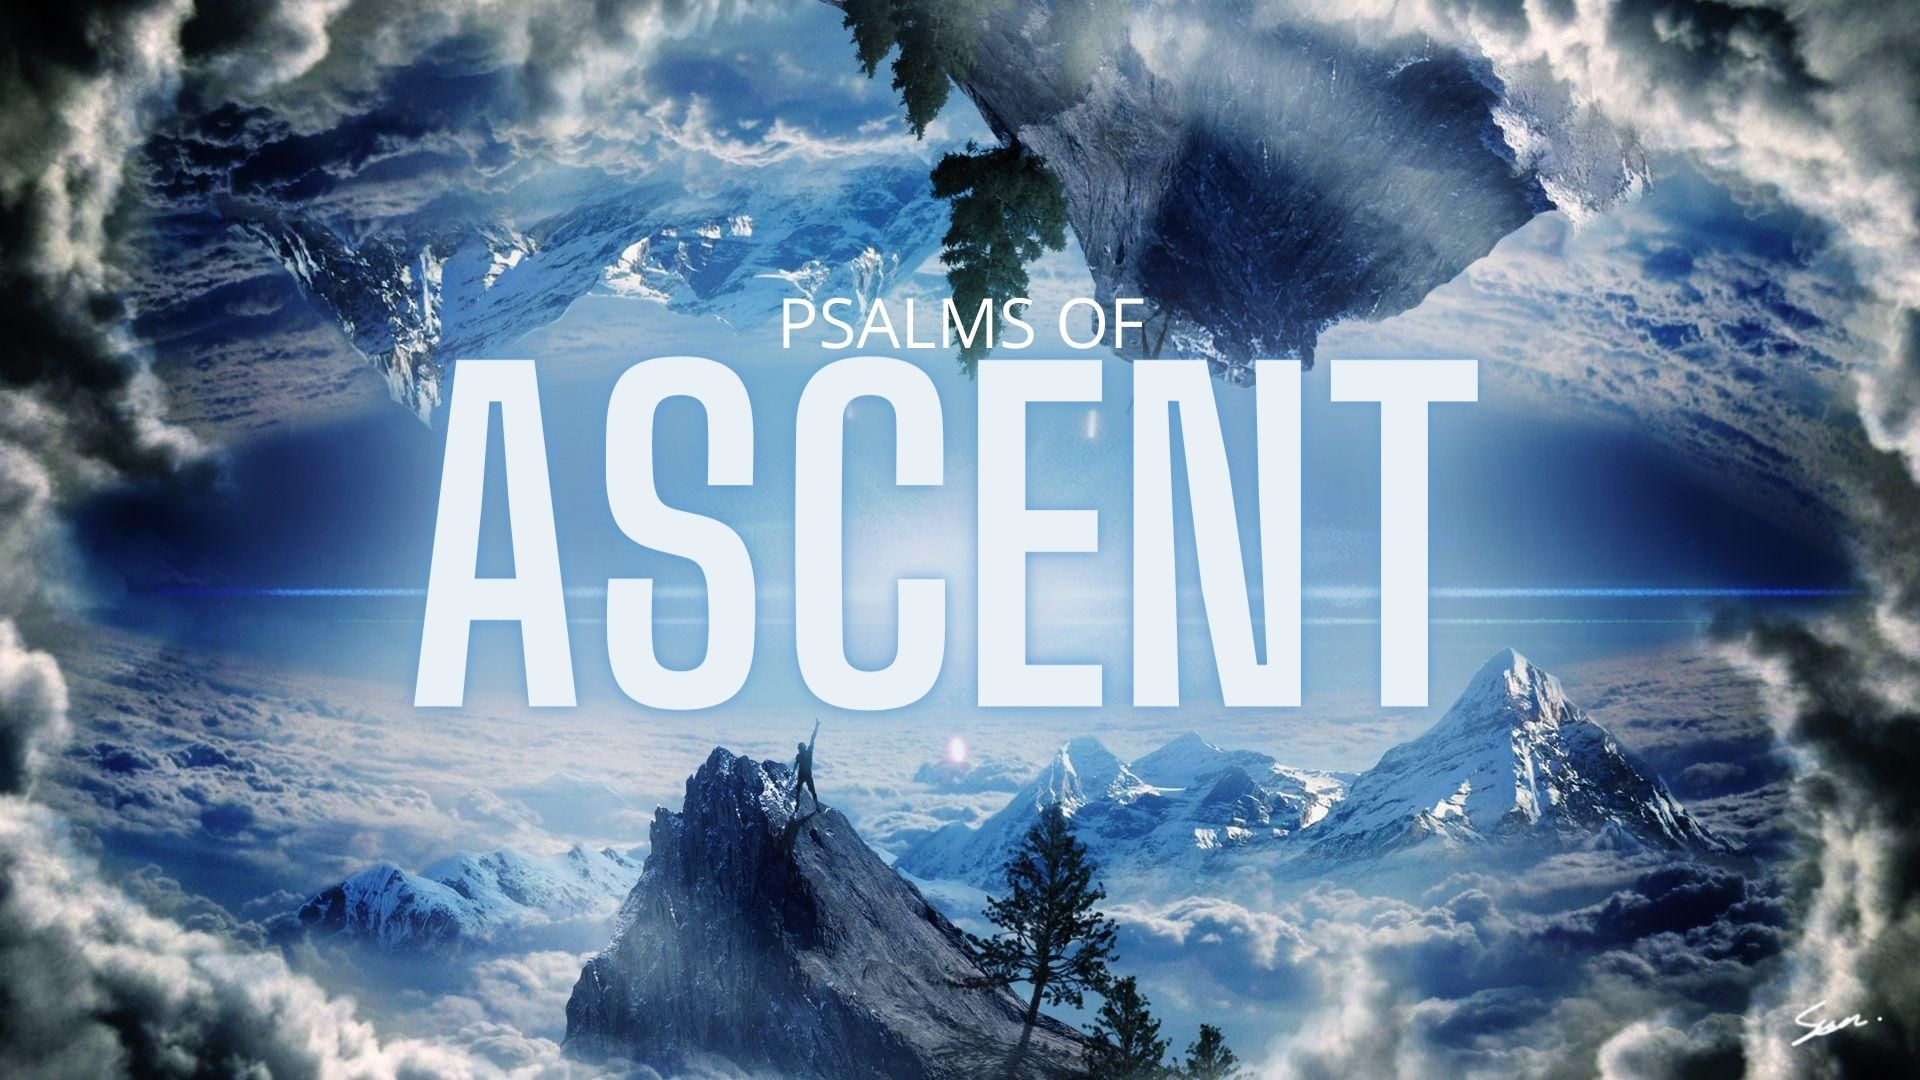 Psalms of the Ascents